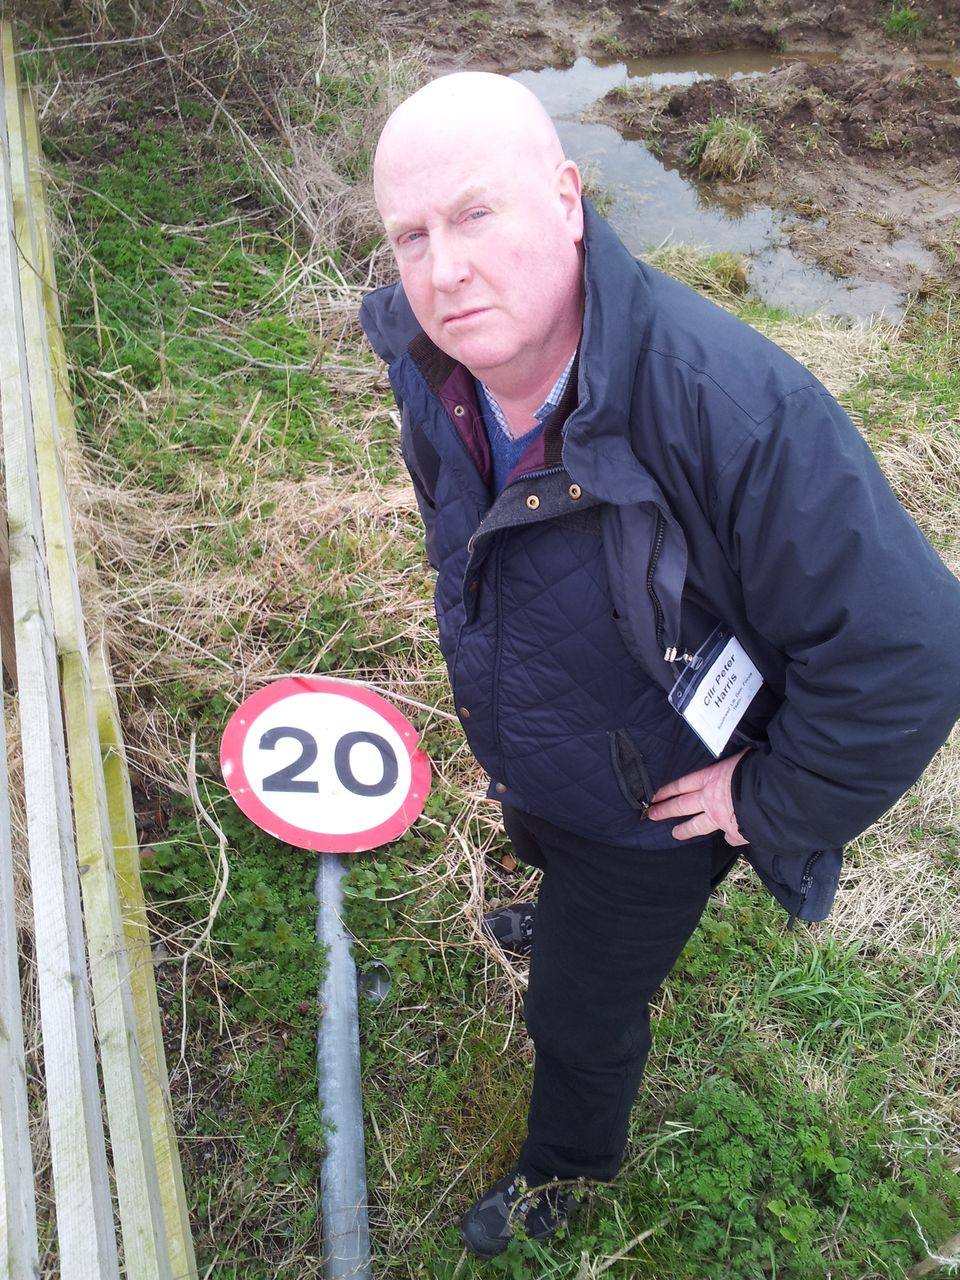 The County Council have put 20mph zones inthe ditch - they are letting Southwell's residents down again.